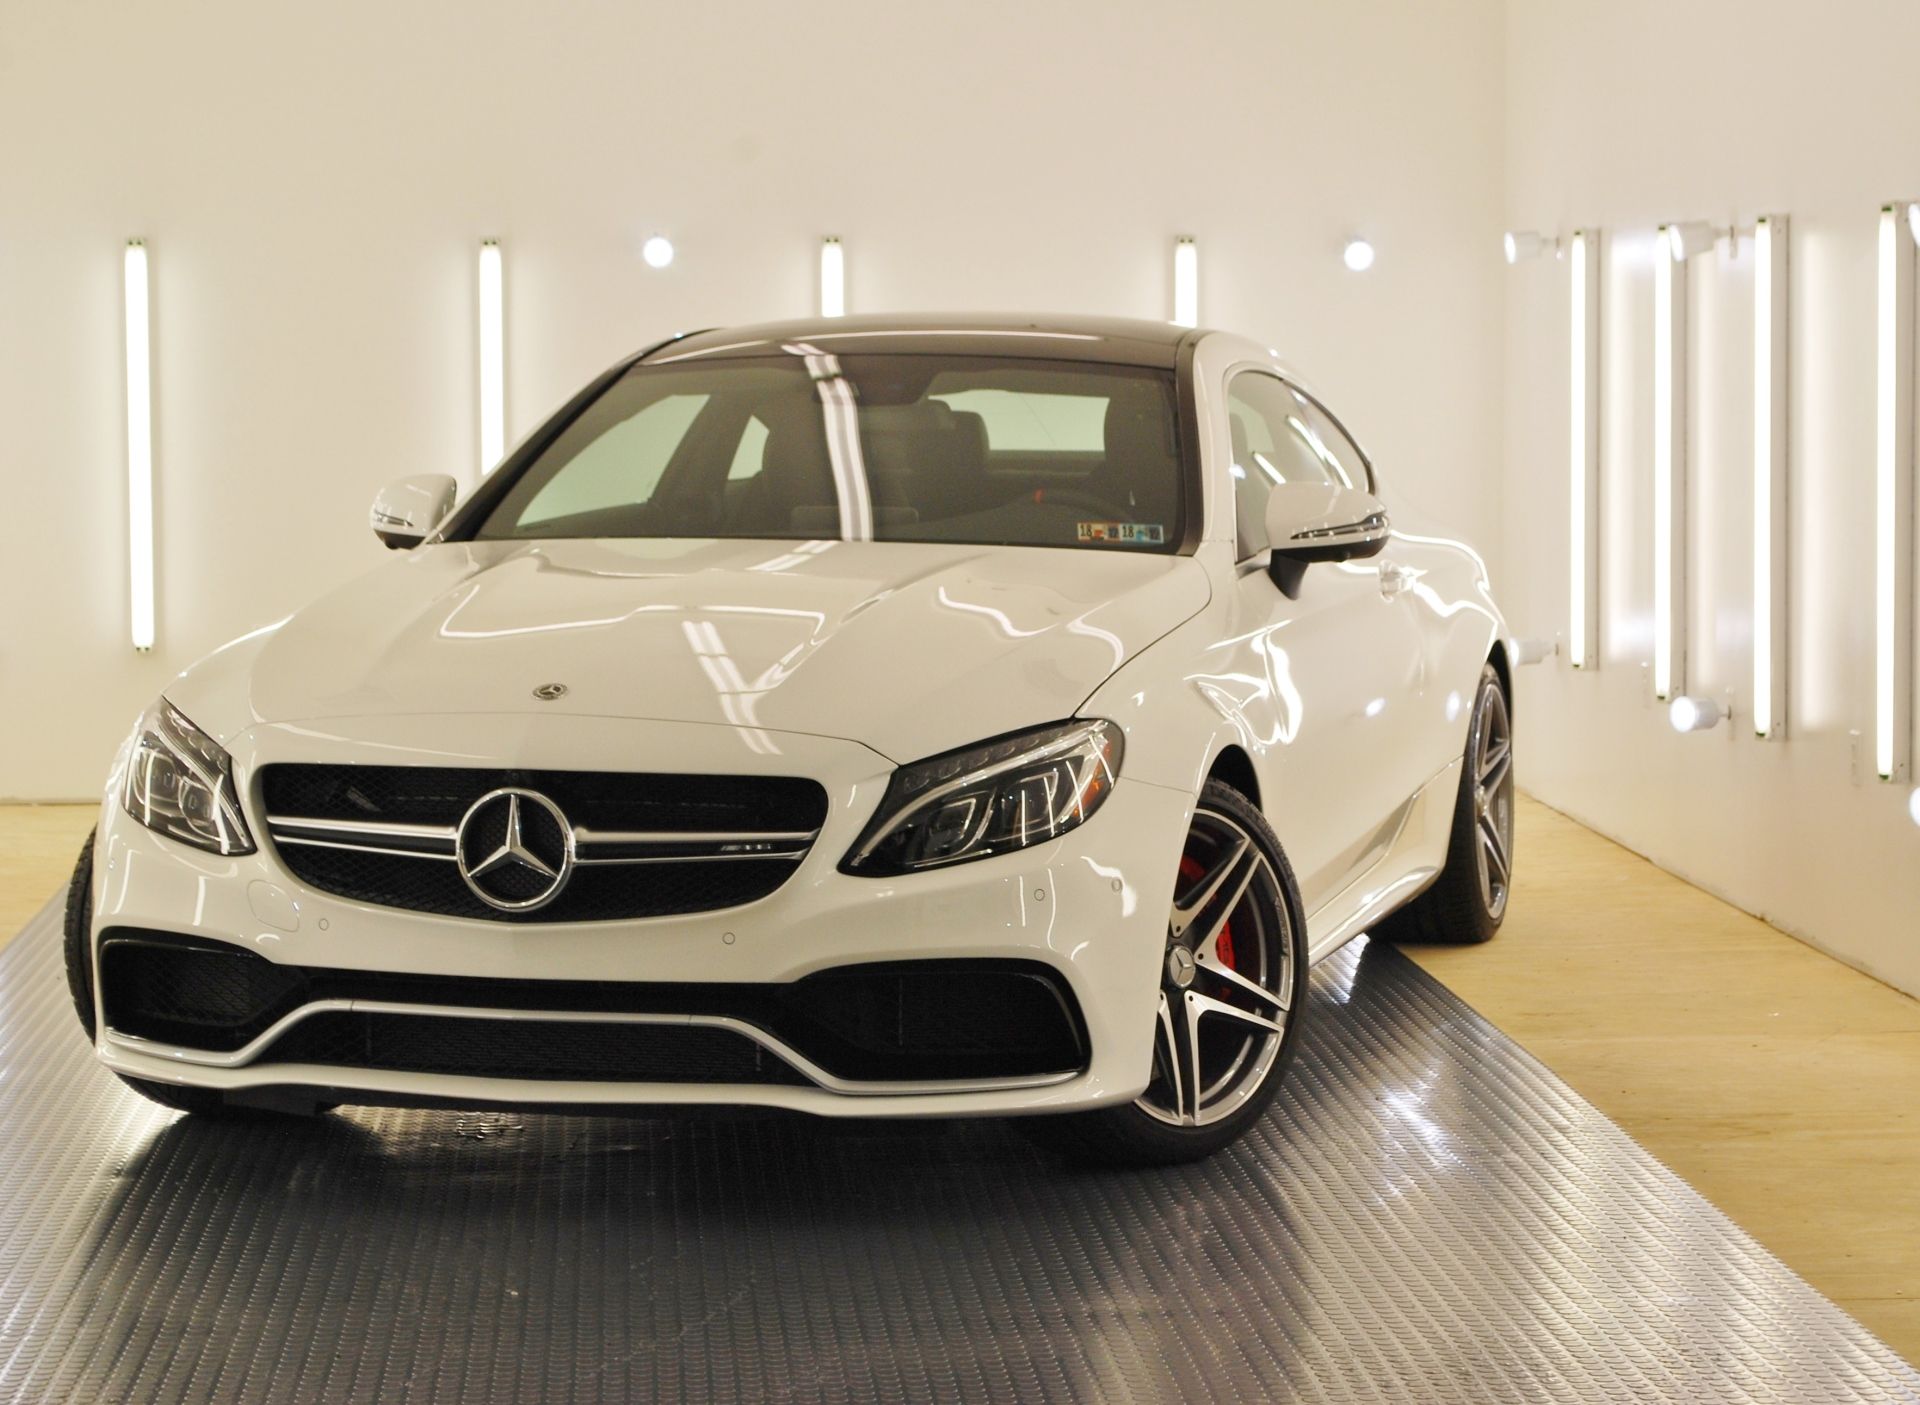 pittsburgh paint protection film pittsburgh clear bra pittsburgh auto detailing ceramic pro modesta opti coat ceramic coating auto detailing